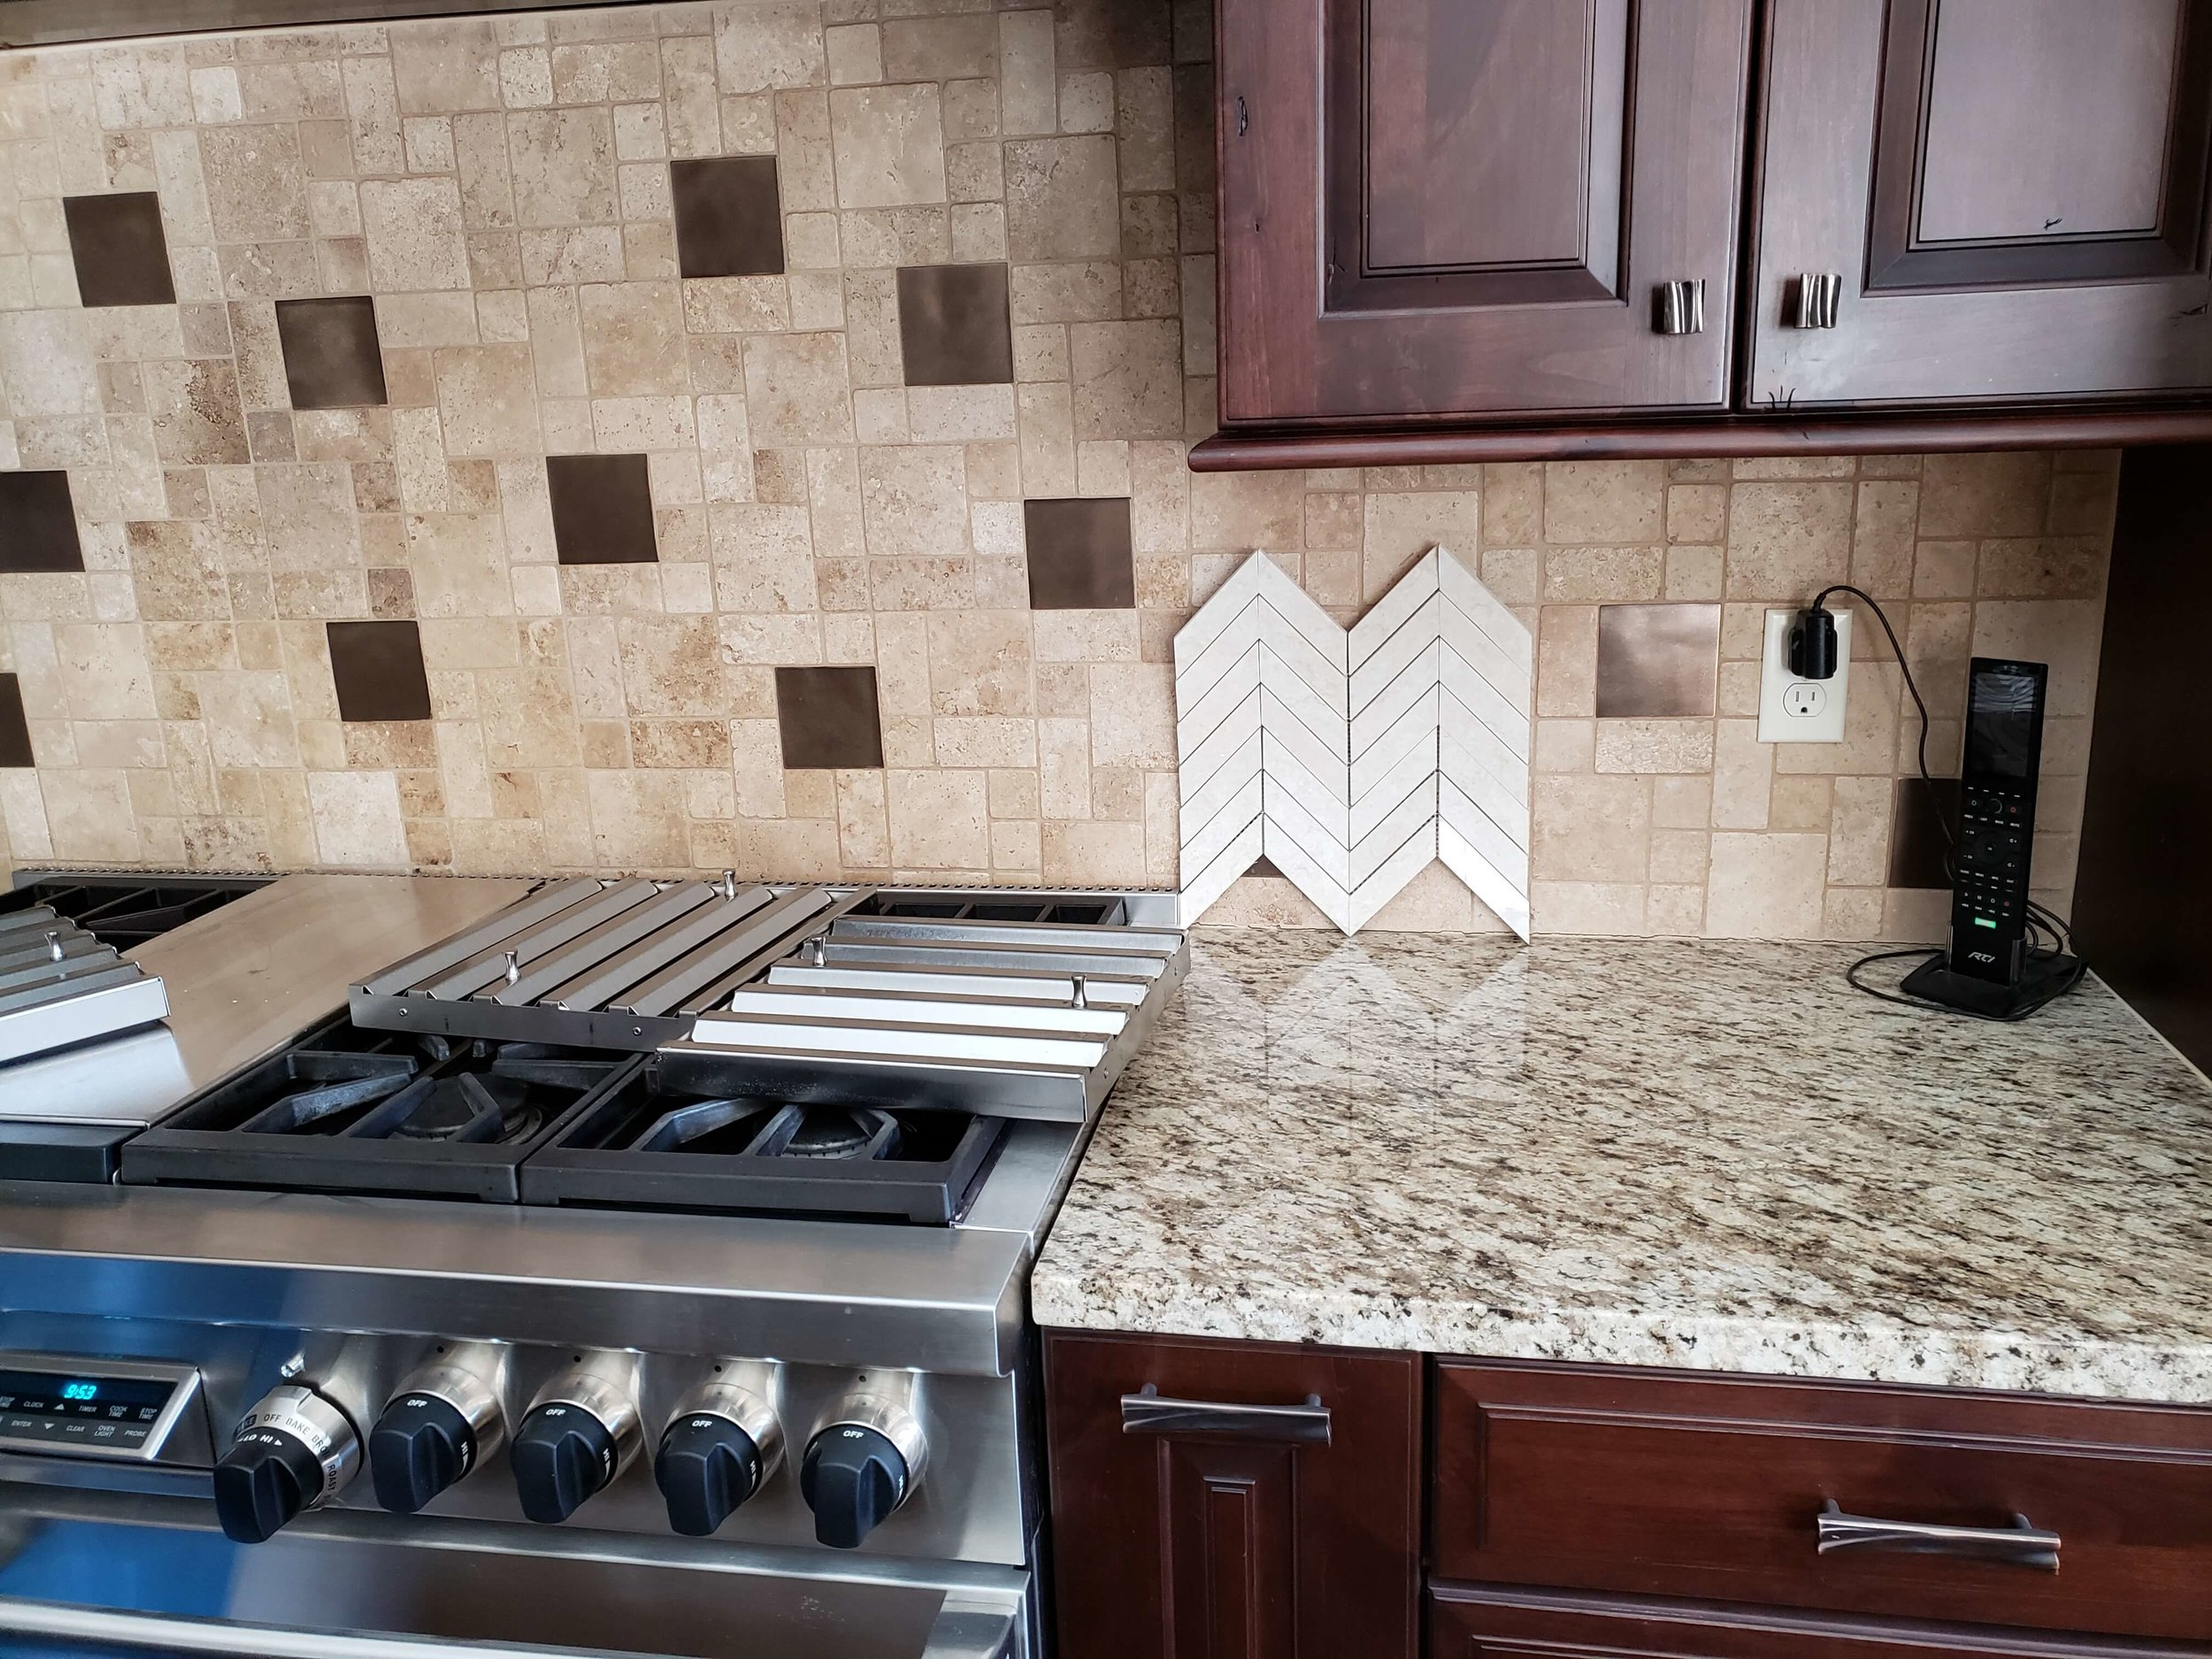 Backsplash Q and A - What tile backsplash would help update this kitchen?